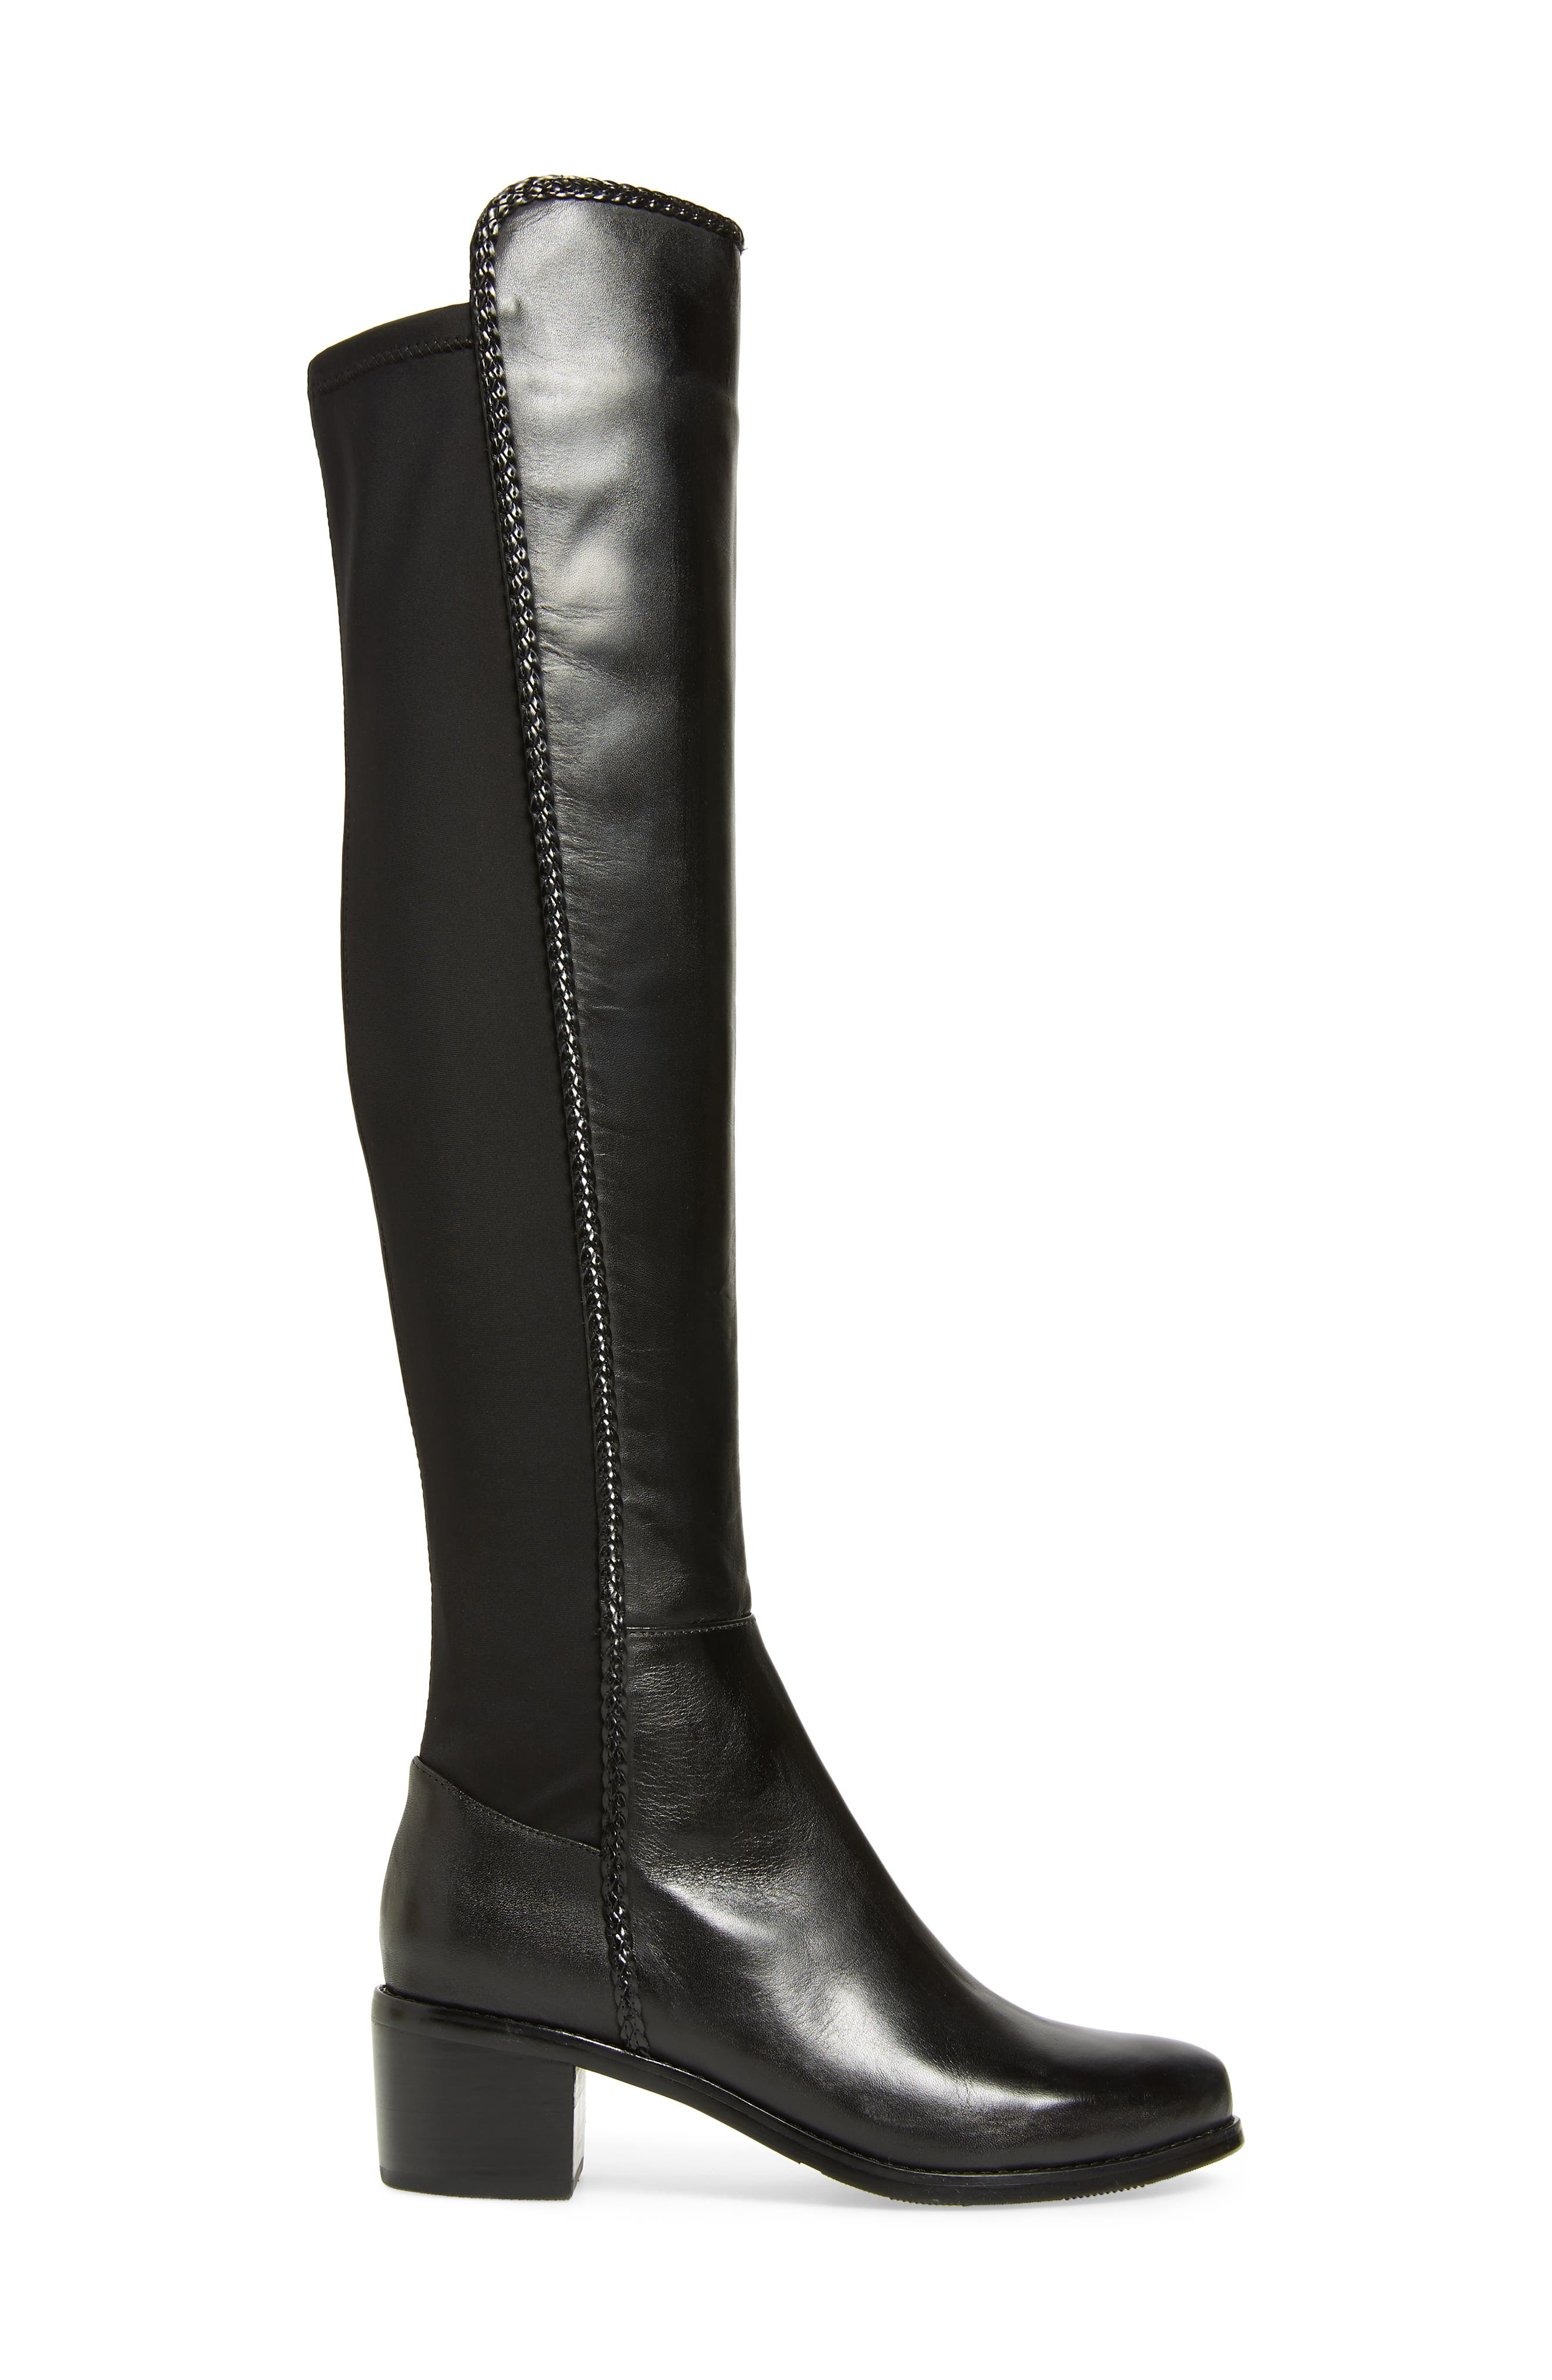 Florence Waterproof Over the Knee Boot,                             Alternate thumbnail 3, color,                             001